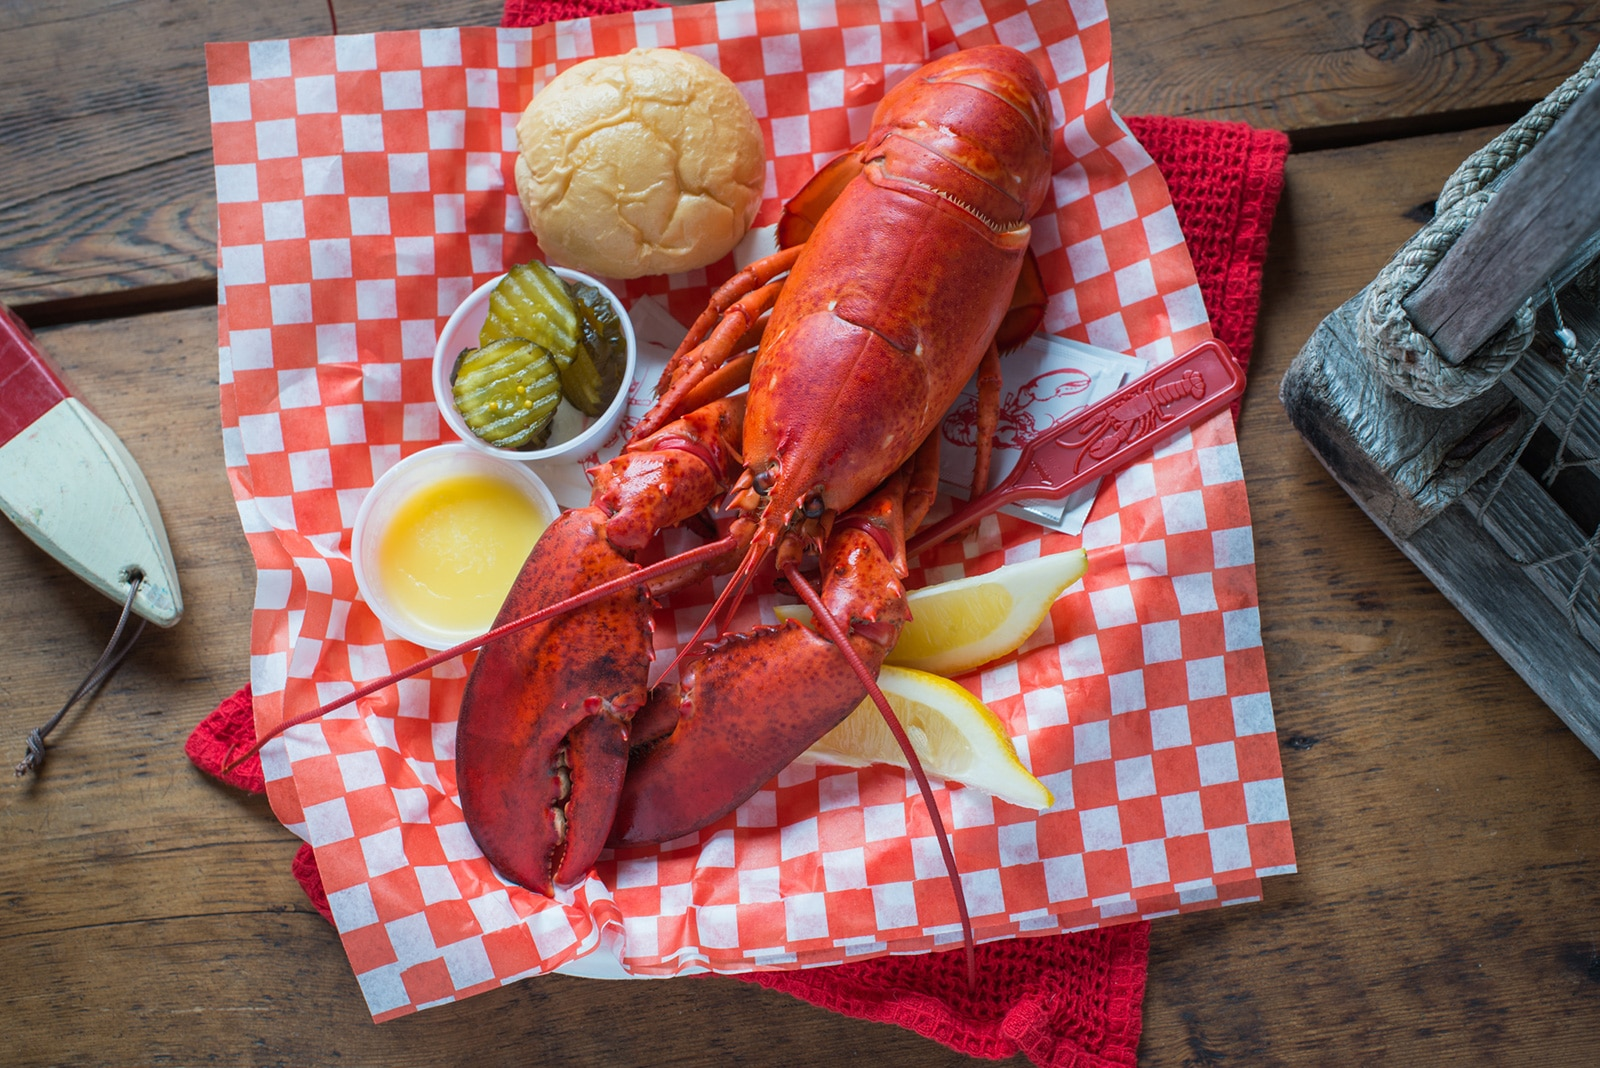 Colville Bay Oysters, The Lobster Shack Lobster